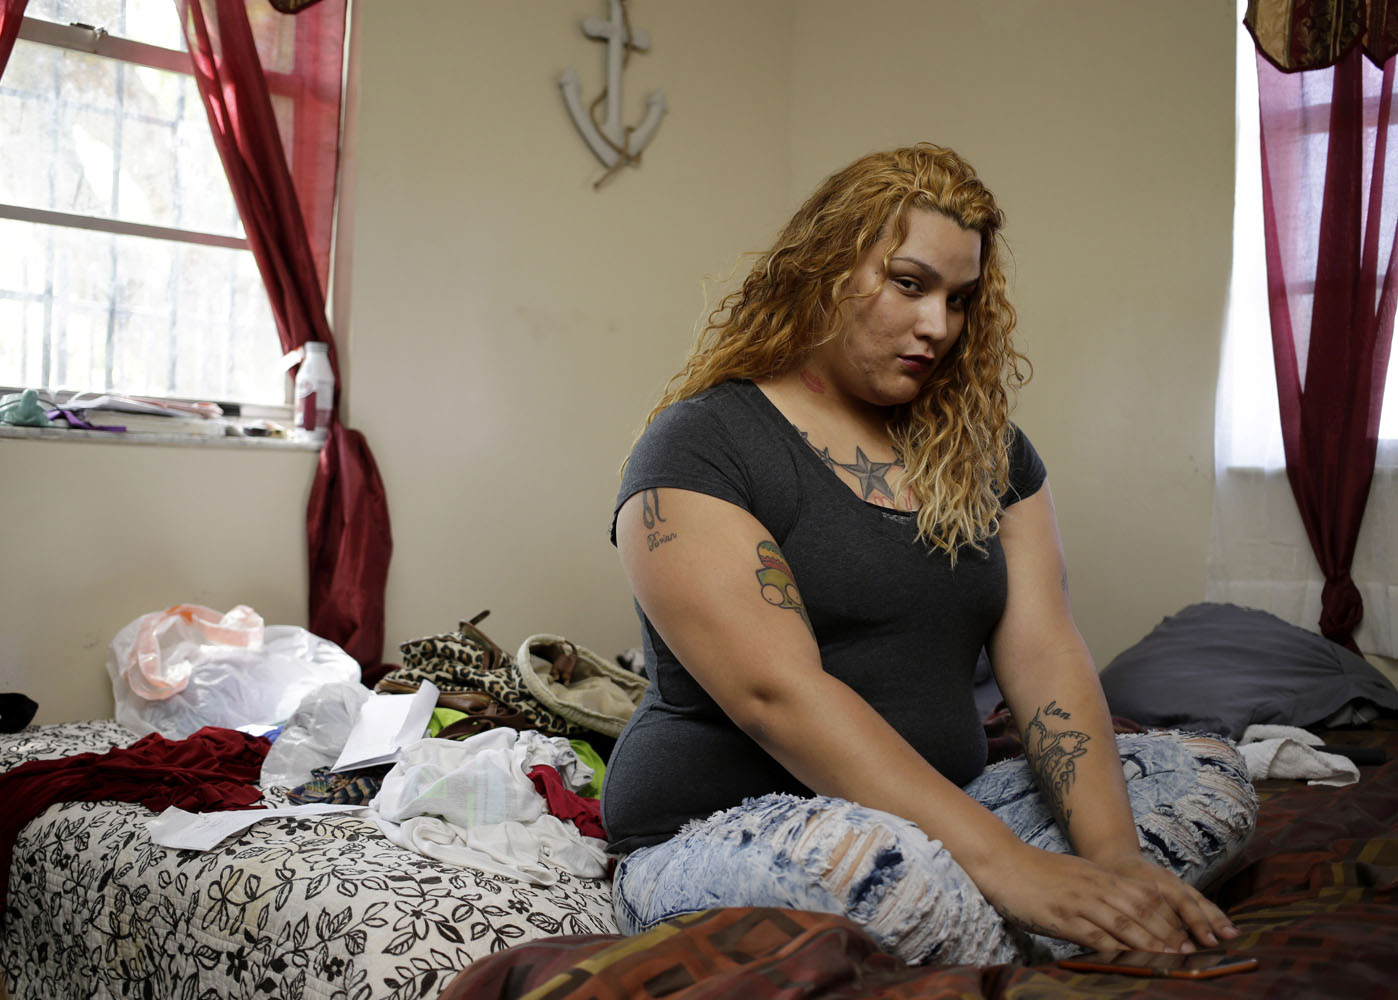 transgender youths show hardship resilience